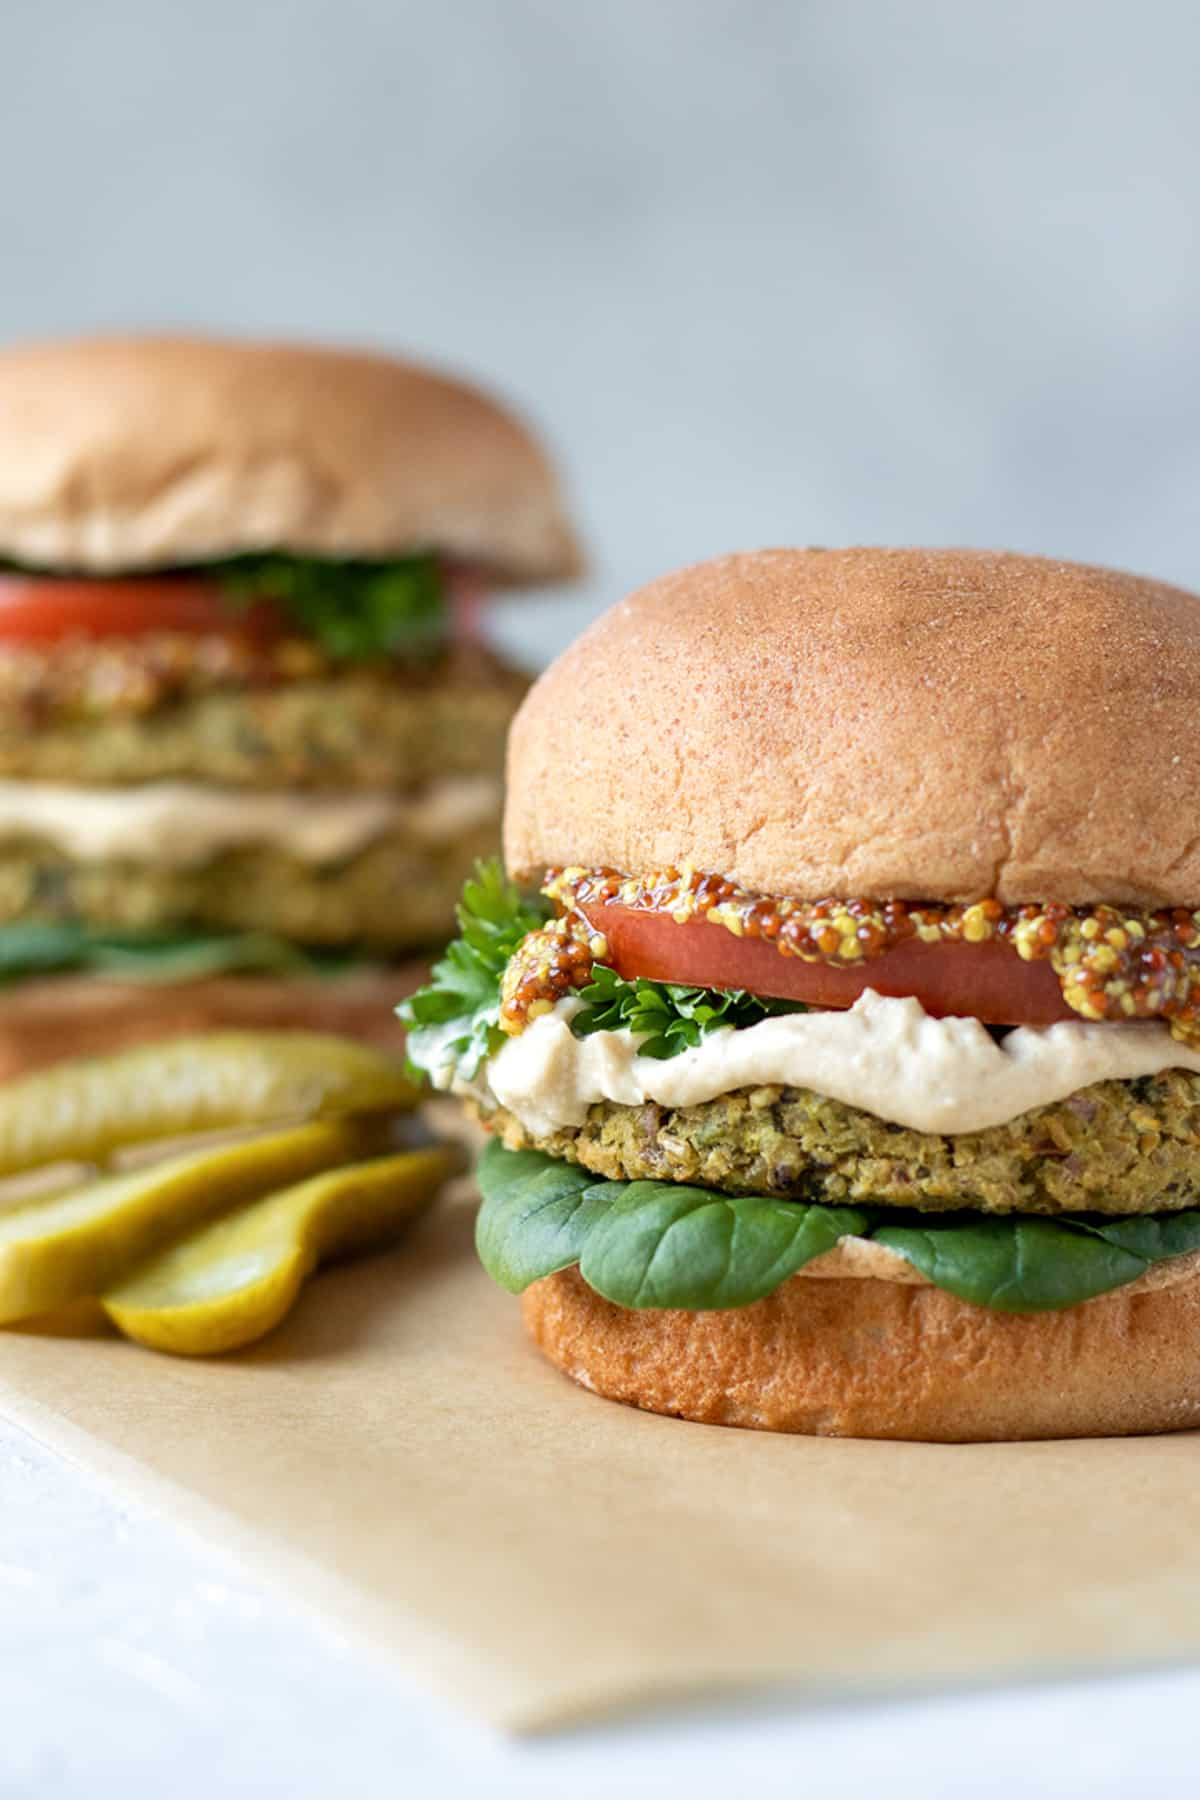 Tabbouleh-Inspired Bean Burgers topped with tomato, parsley, spinach, mustard and hummus.